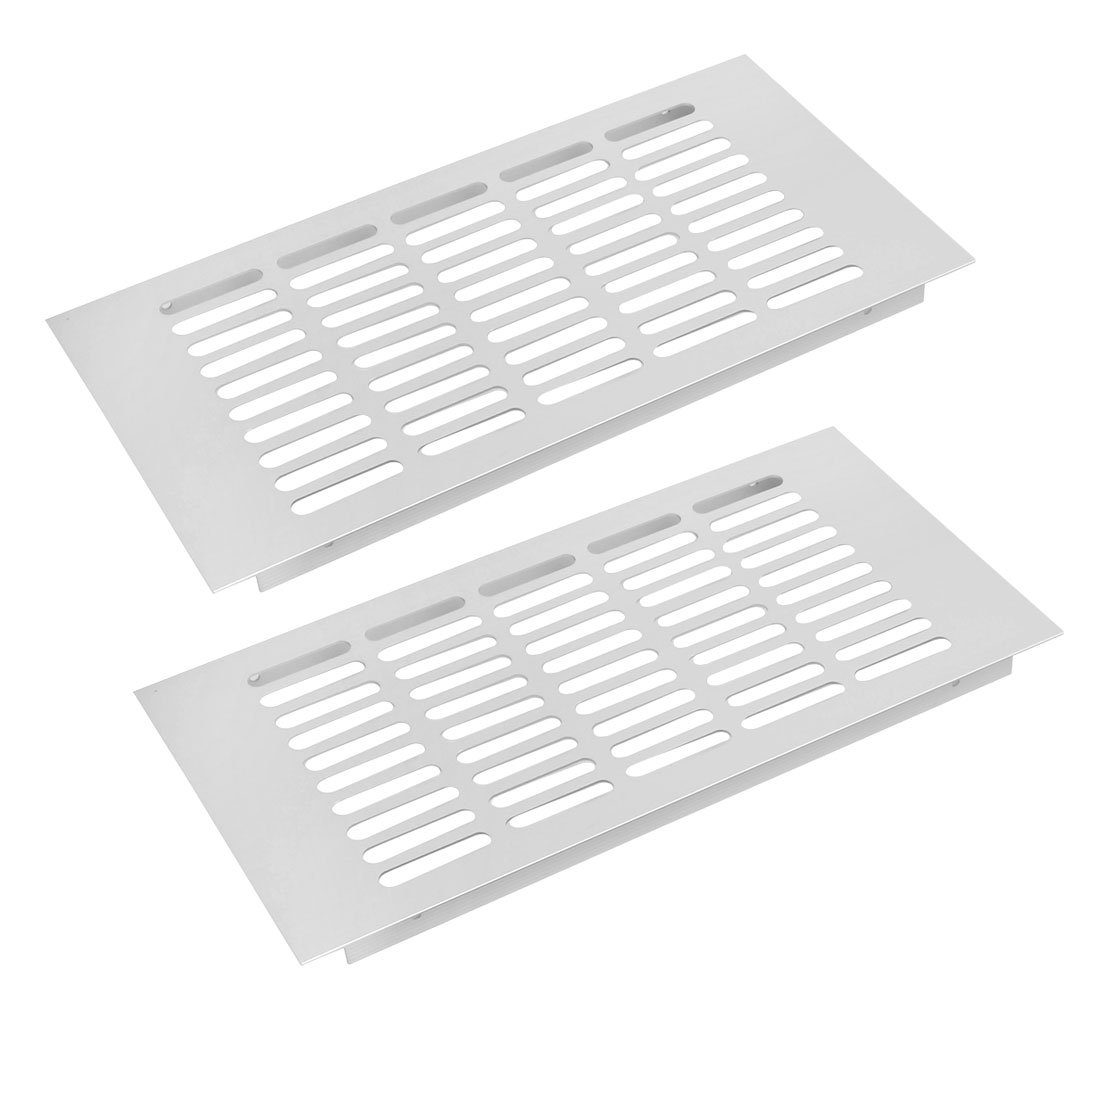 uxcell 2pcs 300mmx150mm Aluminum Alloy Air Vent Louvered Grill Cover Ventilation Grille